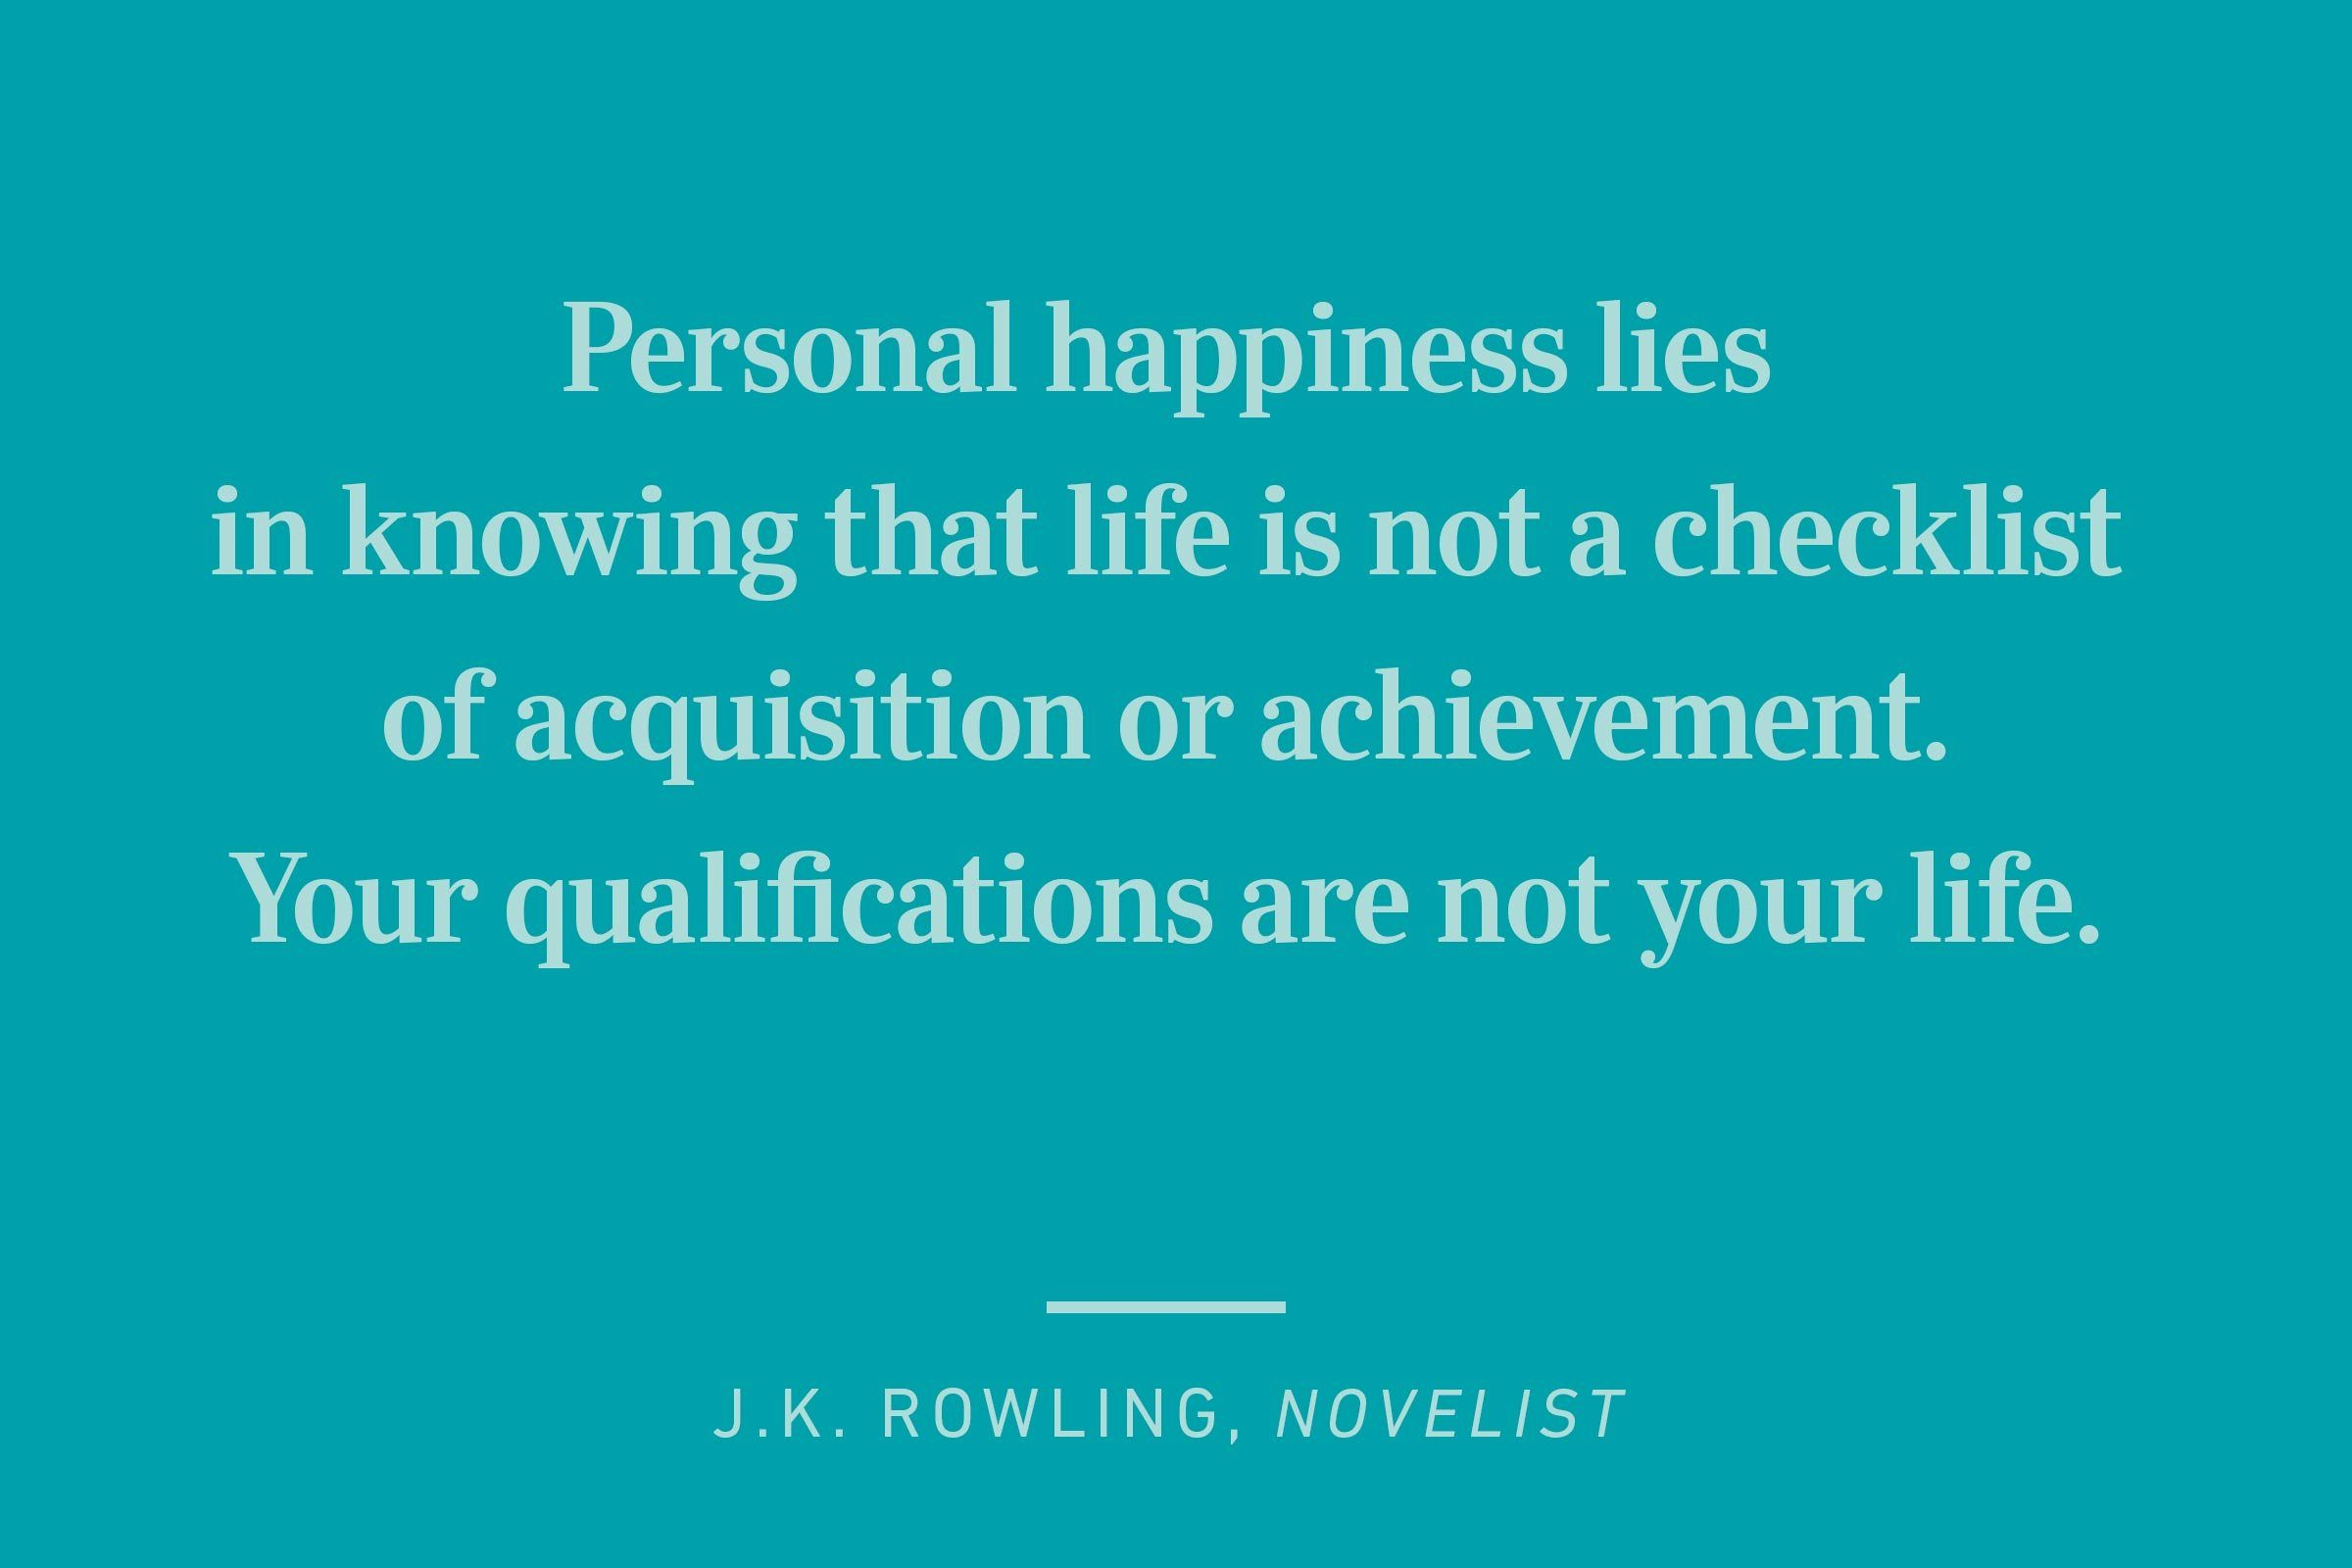 jk rowling happiness quote